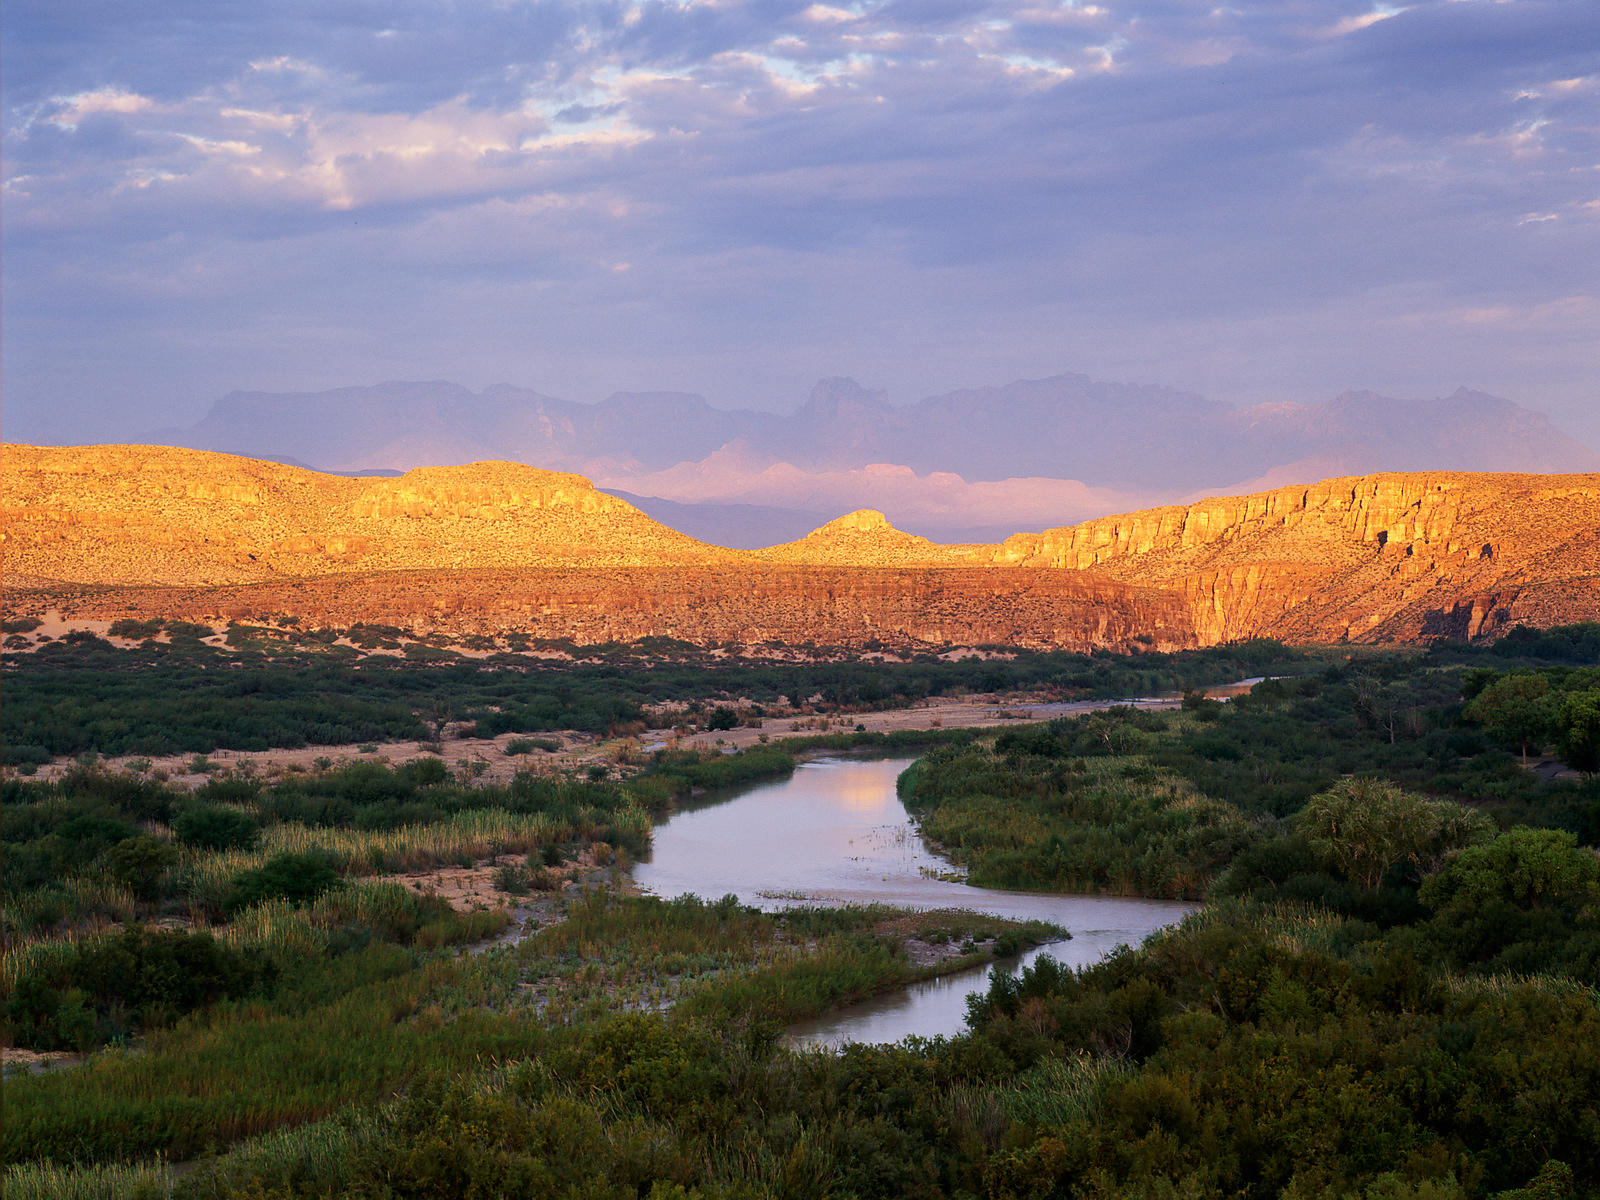 Rio Grande and the Chisos Mountains